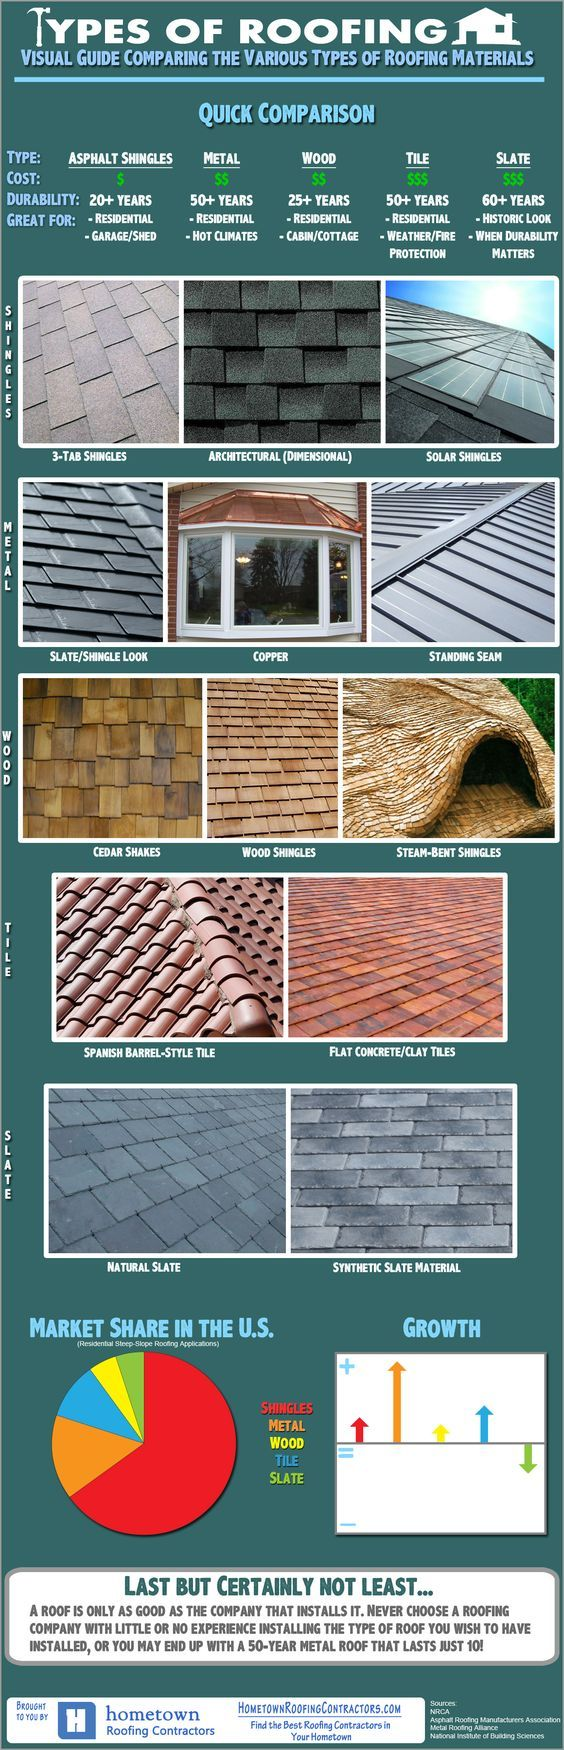 10 Best Ideas About Types Of Roofing Materials On